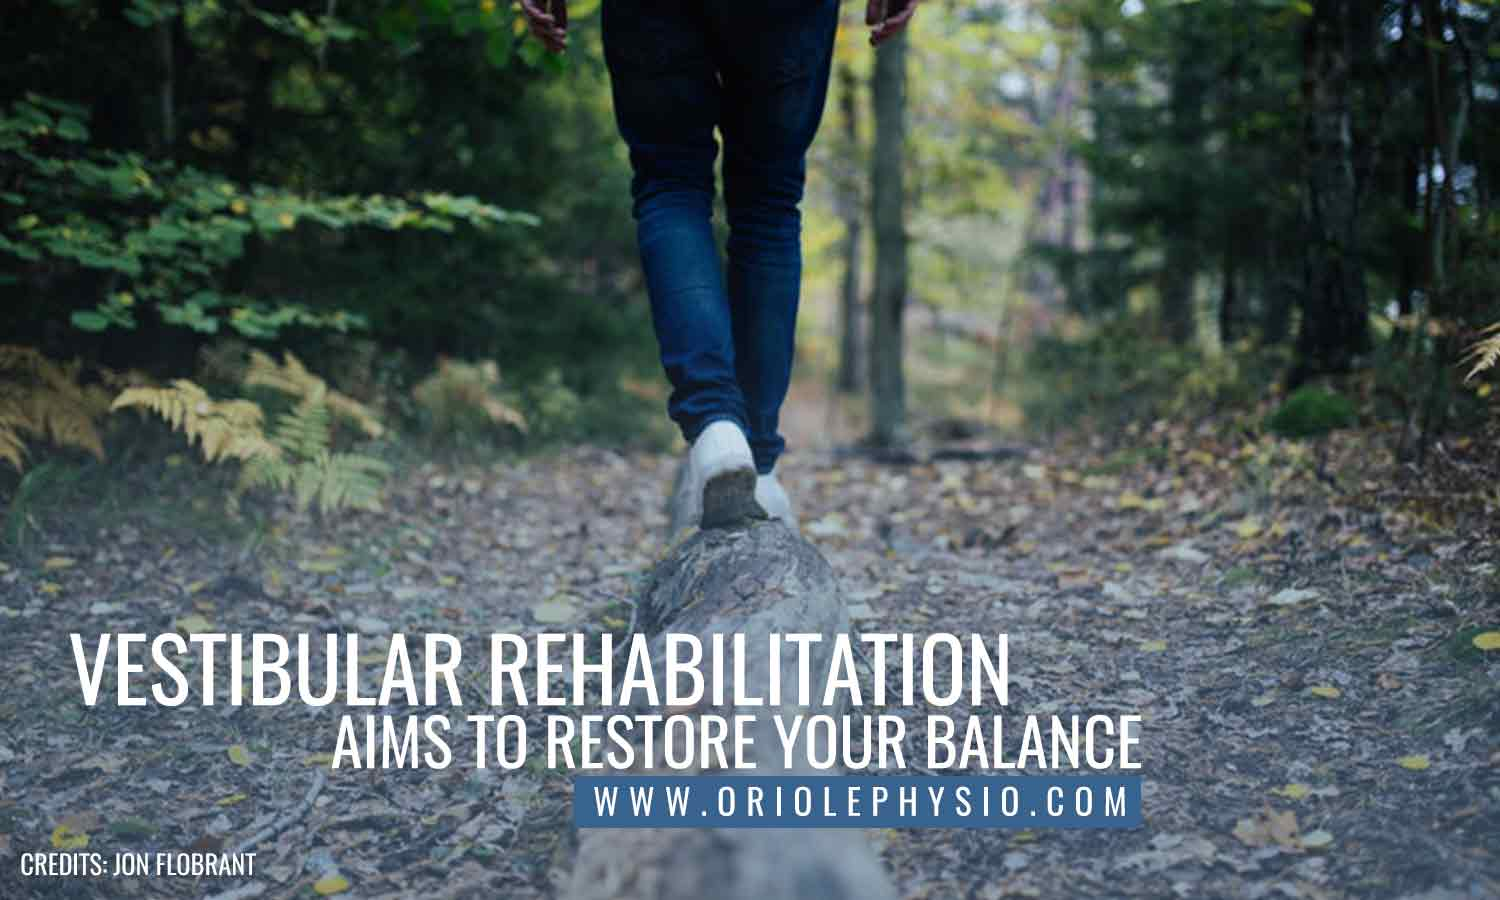 Vestibular rehabilitation aims to restore your balance